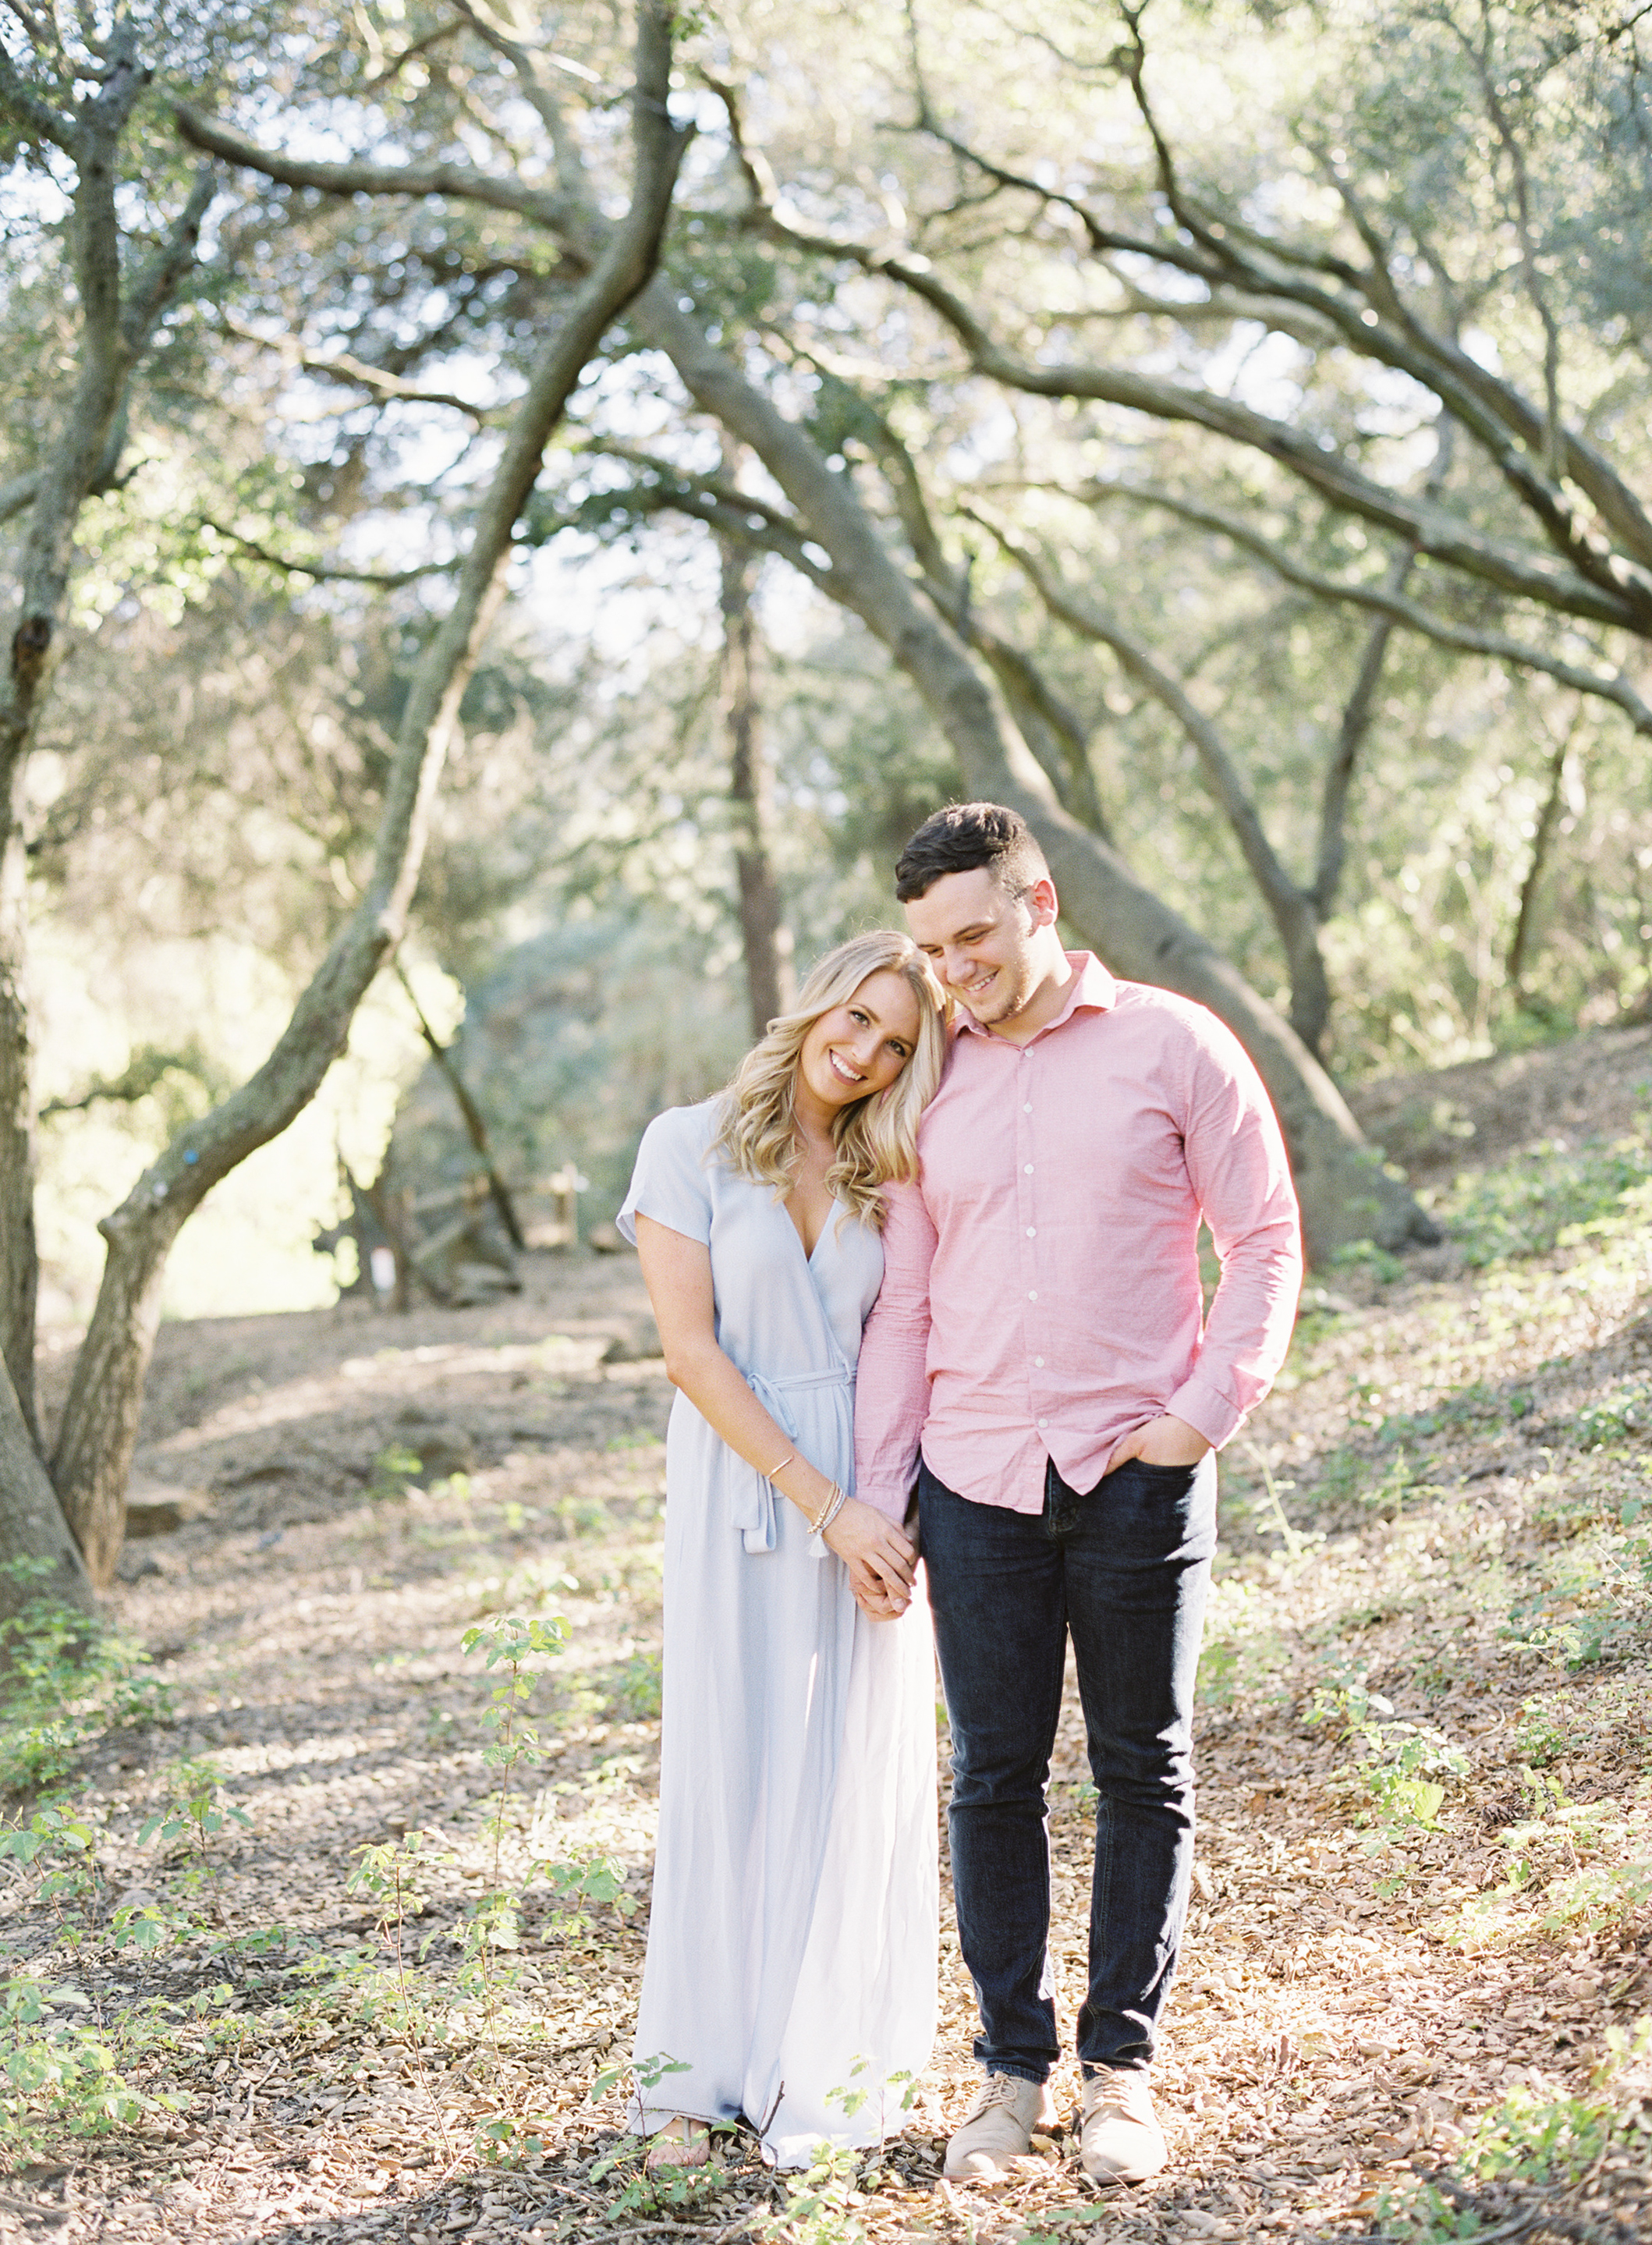 Taylor & Casey's Malibu Engagement-Carrie King Photographer-009.jpg